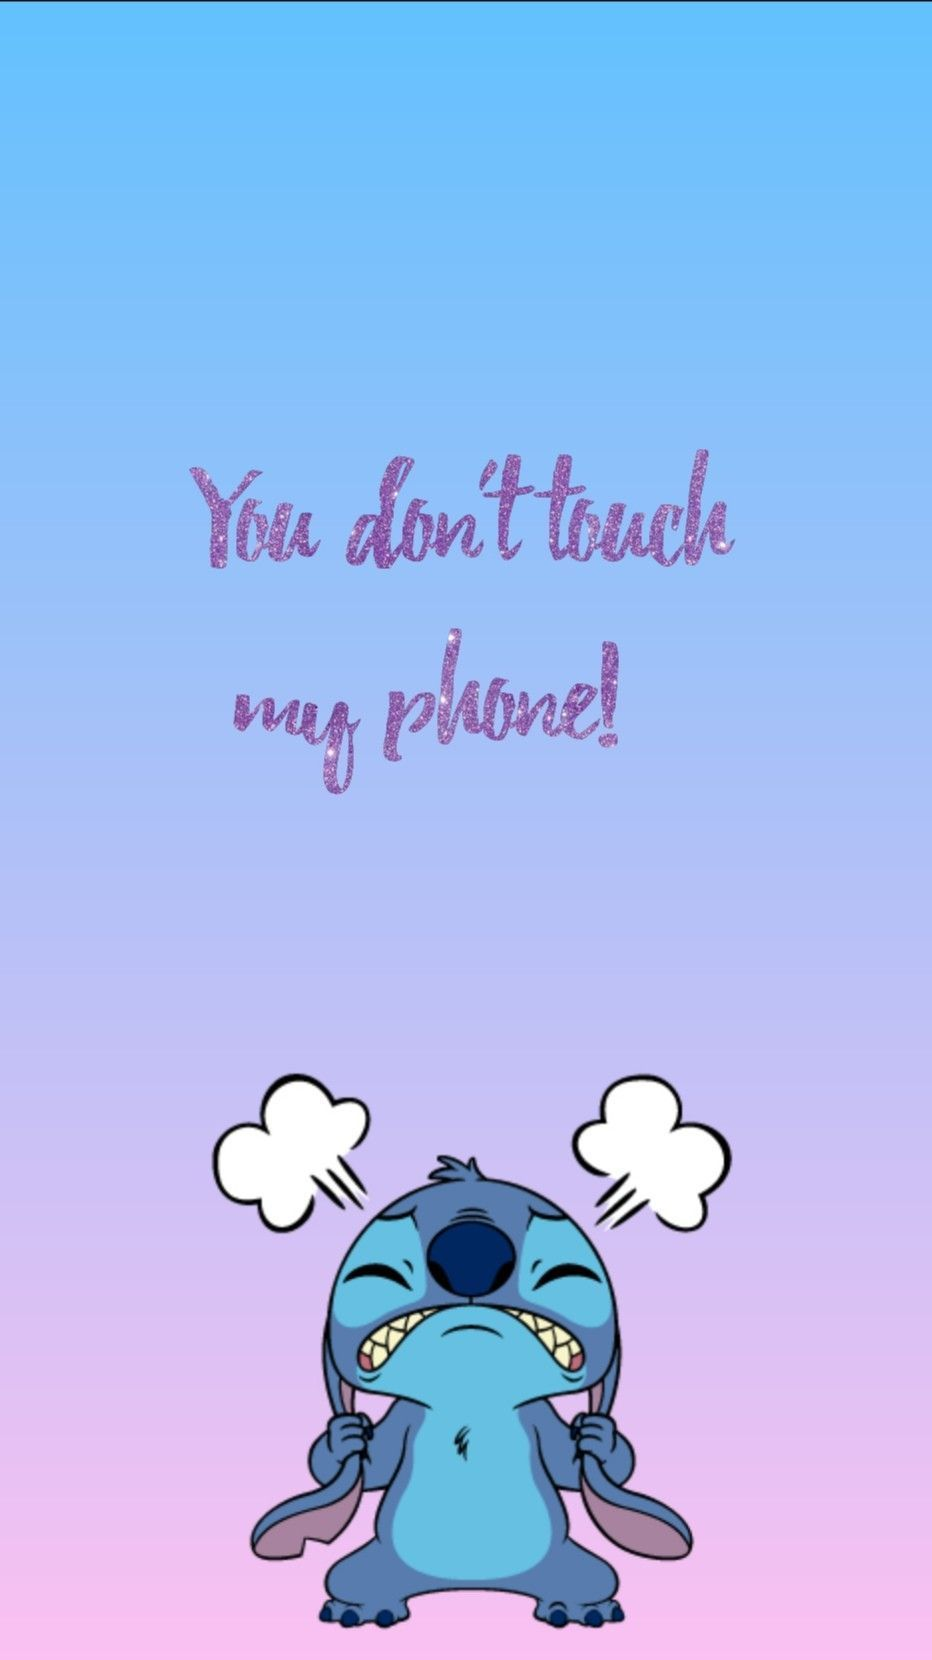 Don T Touch My Phone Stitch Wallpapers Top Free Don T Touch My Phone Stitch Backgrounds Wallpaperaccess Cute dont toch my phone skull scary cool wallpapers lock screen broken screen don't touch my phone locked password. don t touch my phone stitch wallpapers